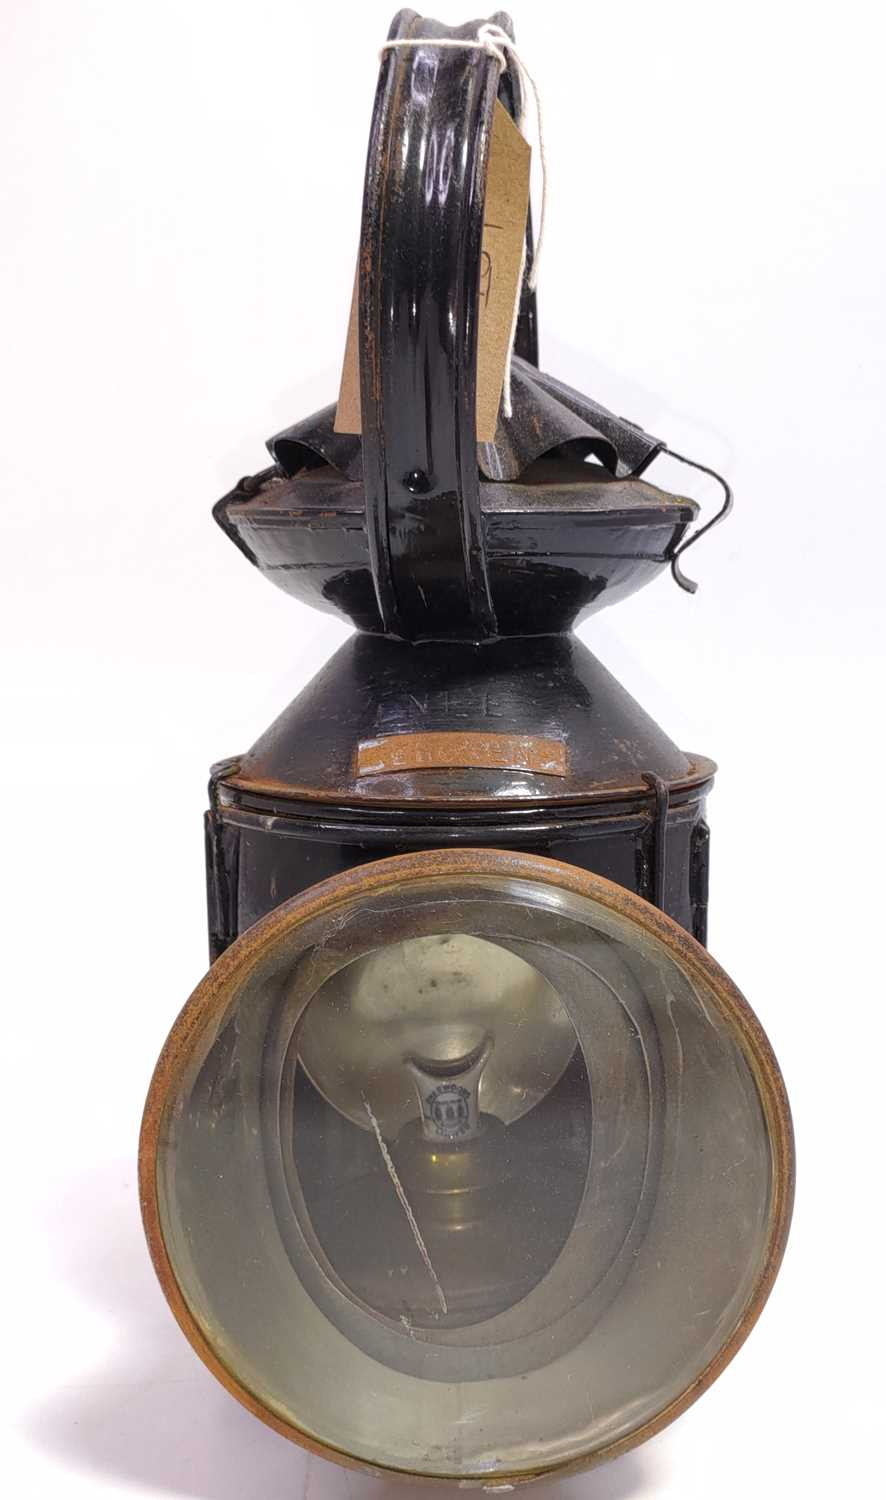 Lot 12 - An early LNE marked Pie crust hand lamp,...